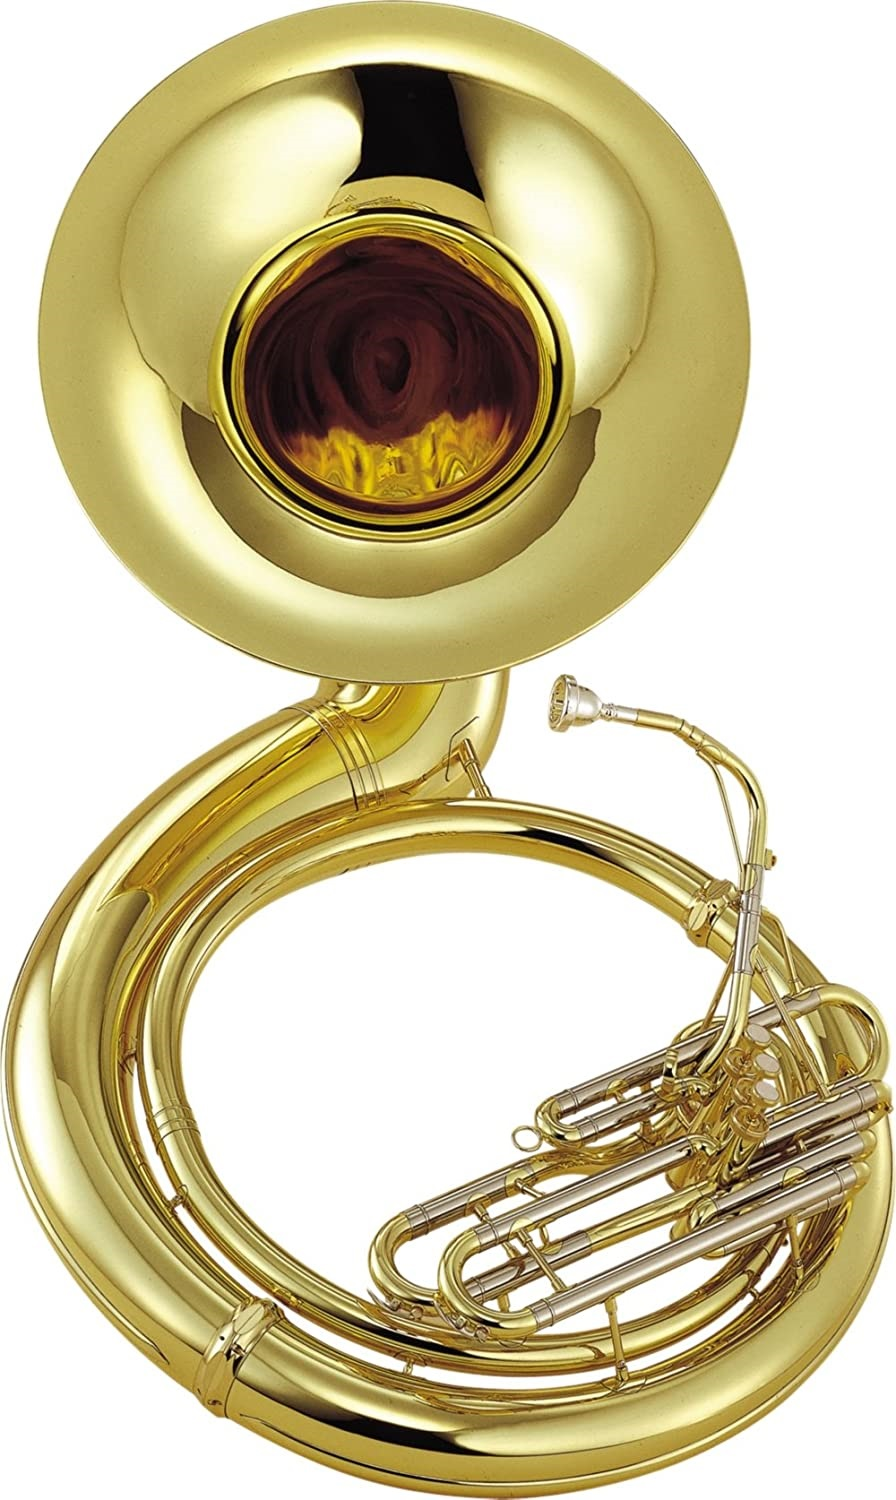 Yamaha YSH 411WC Series Brass BBb Lacquer Sousaphone with Hard Case